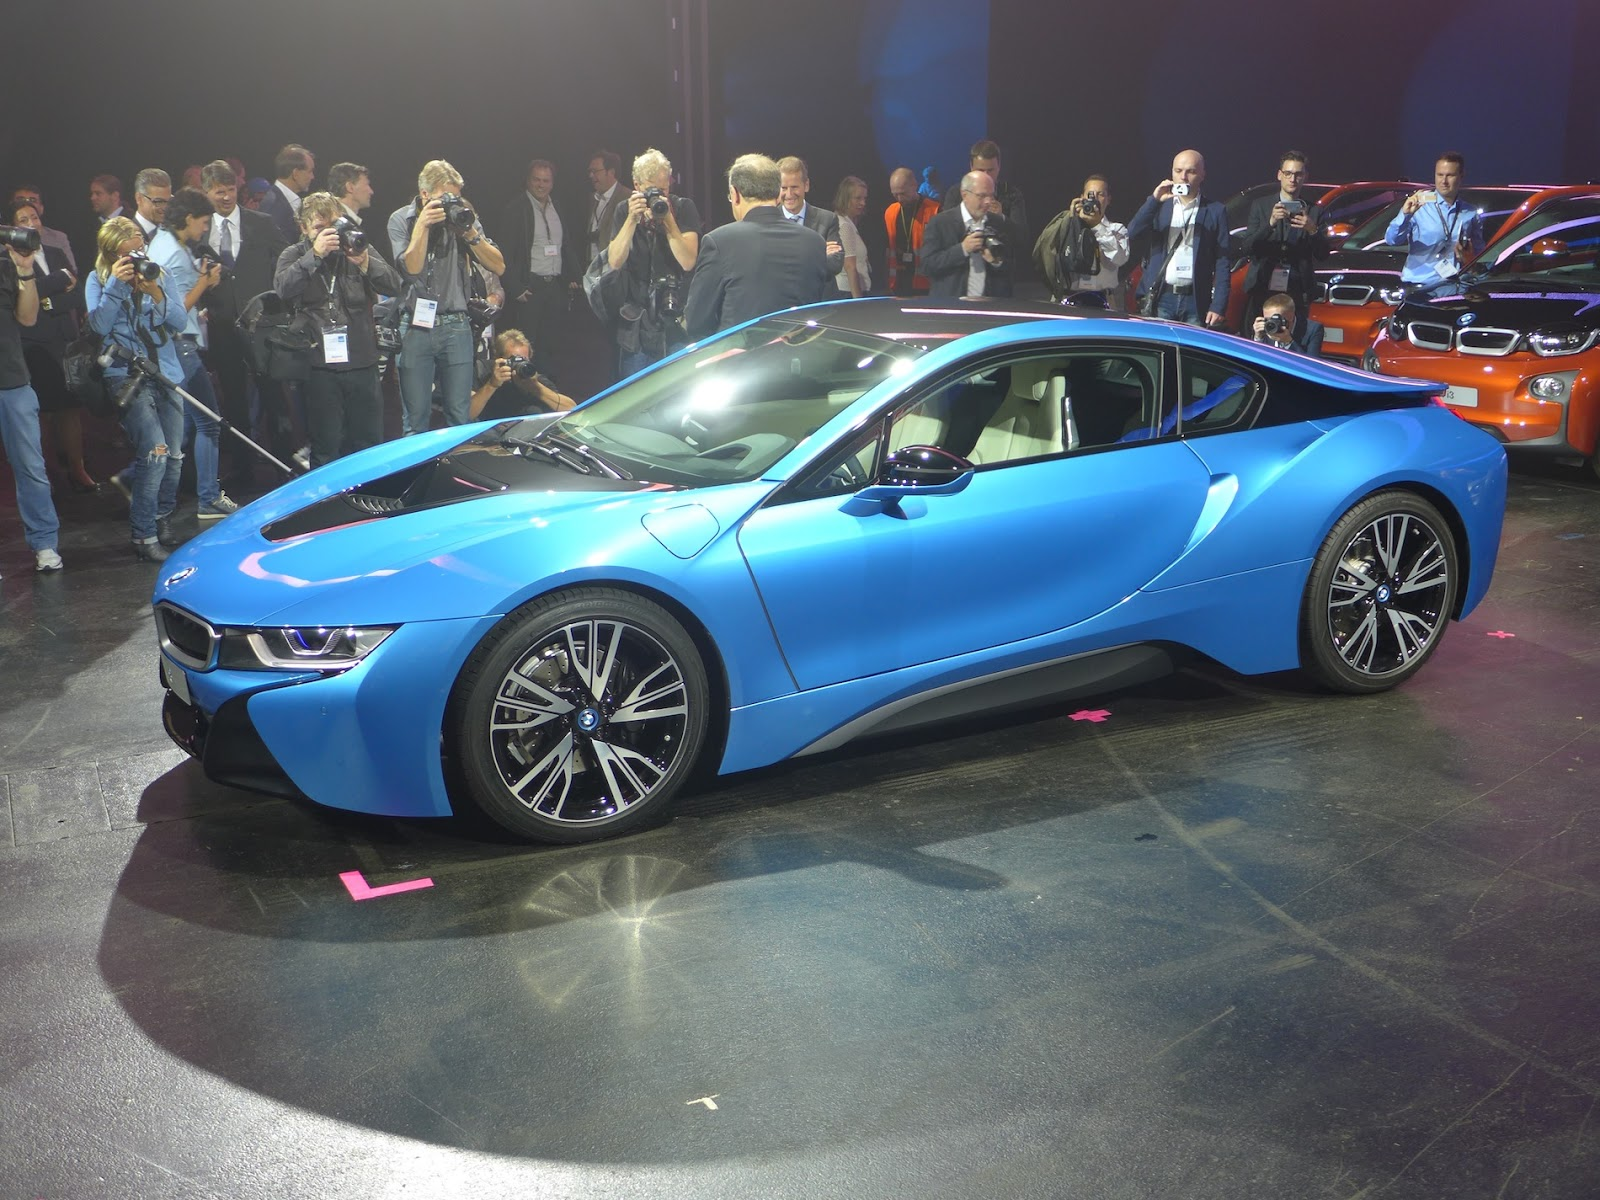 The Protonic Blue BMW I8 Also Features LED Headlight Units North American I8s Will Be Delivered With It Squared Off Cascading